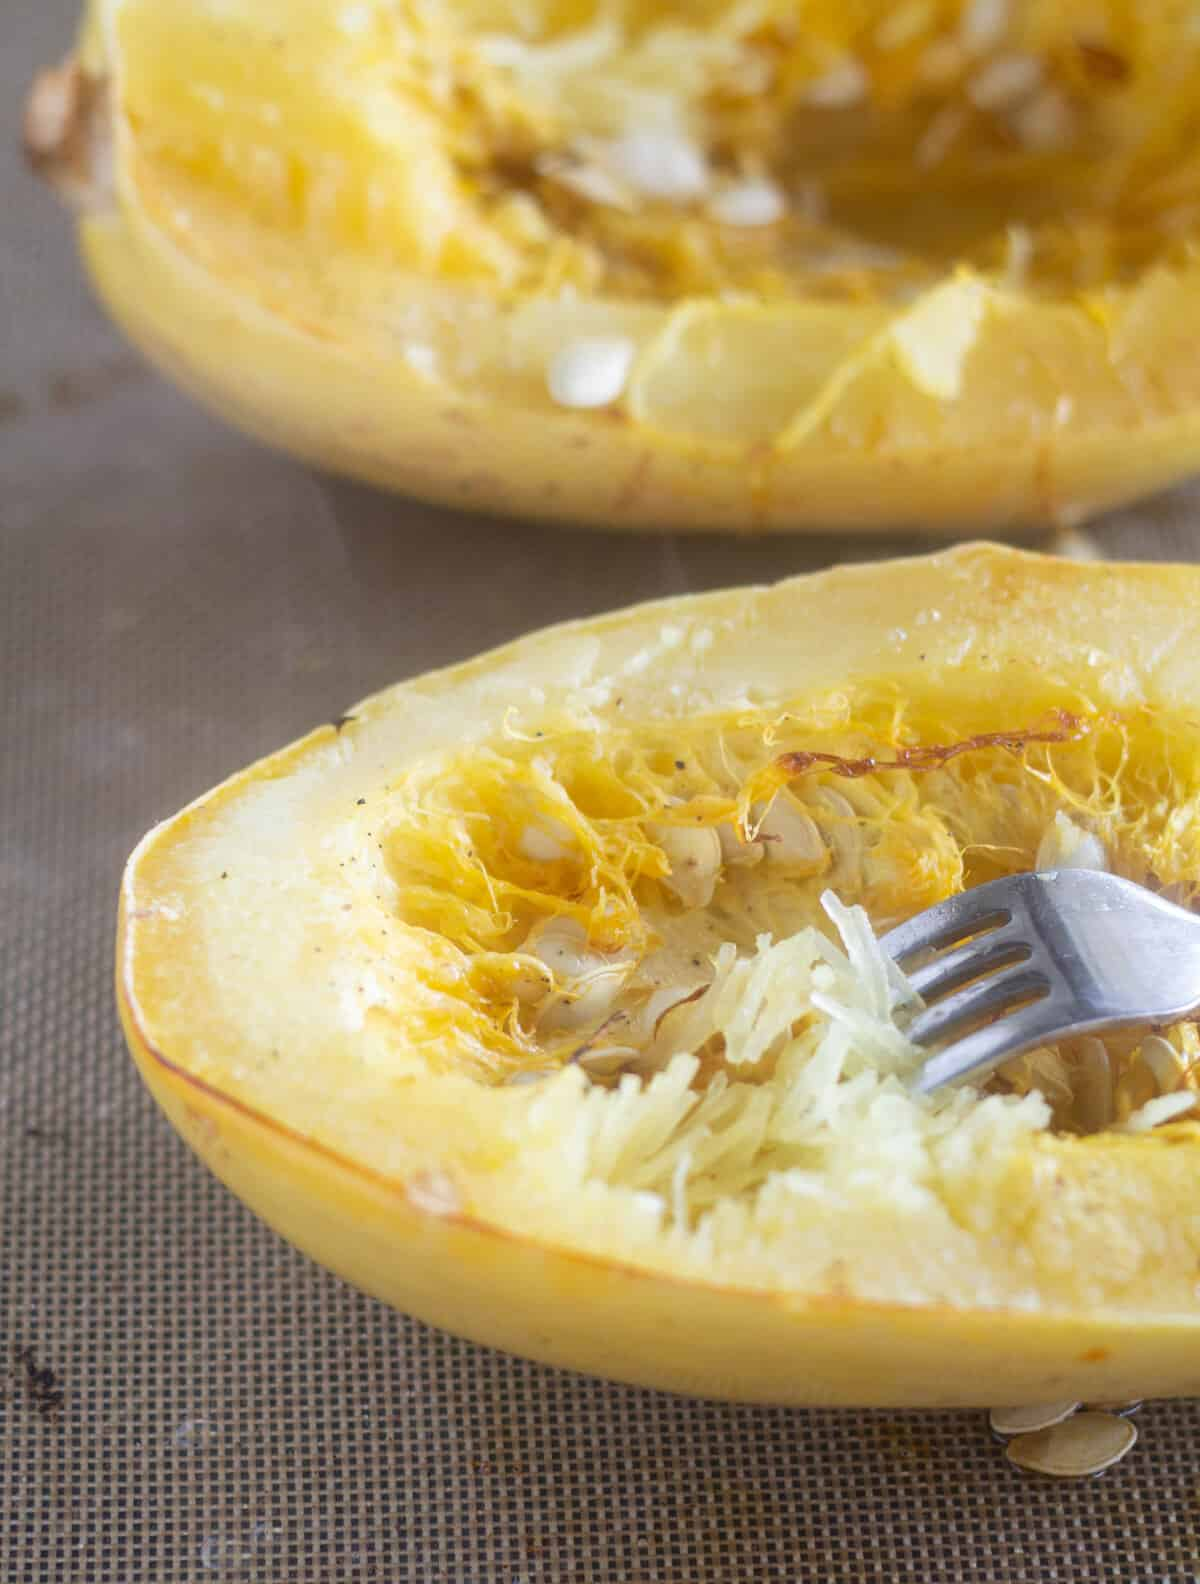 Scooping the flesh out of a spaghetti squash